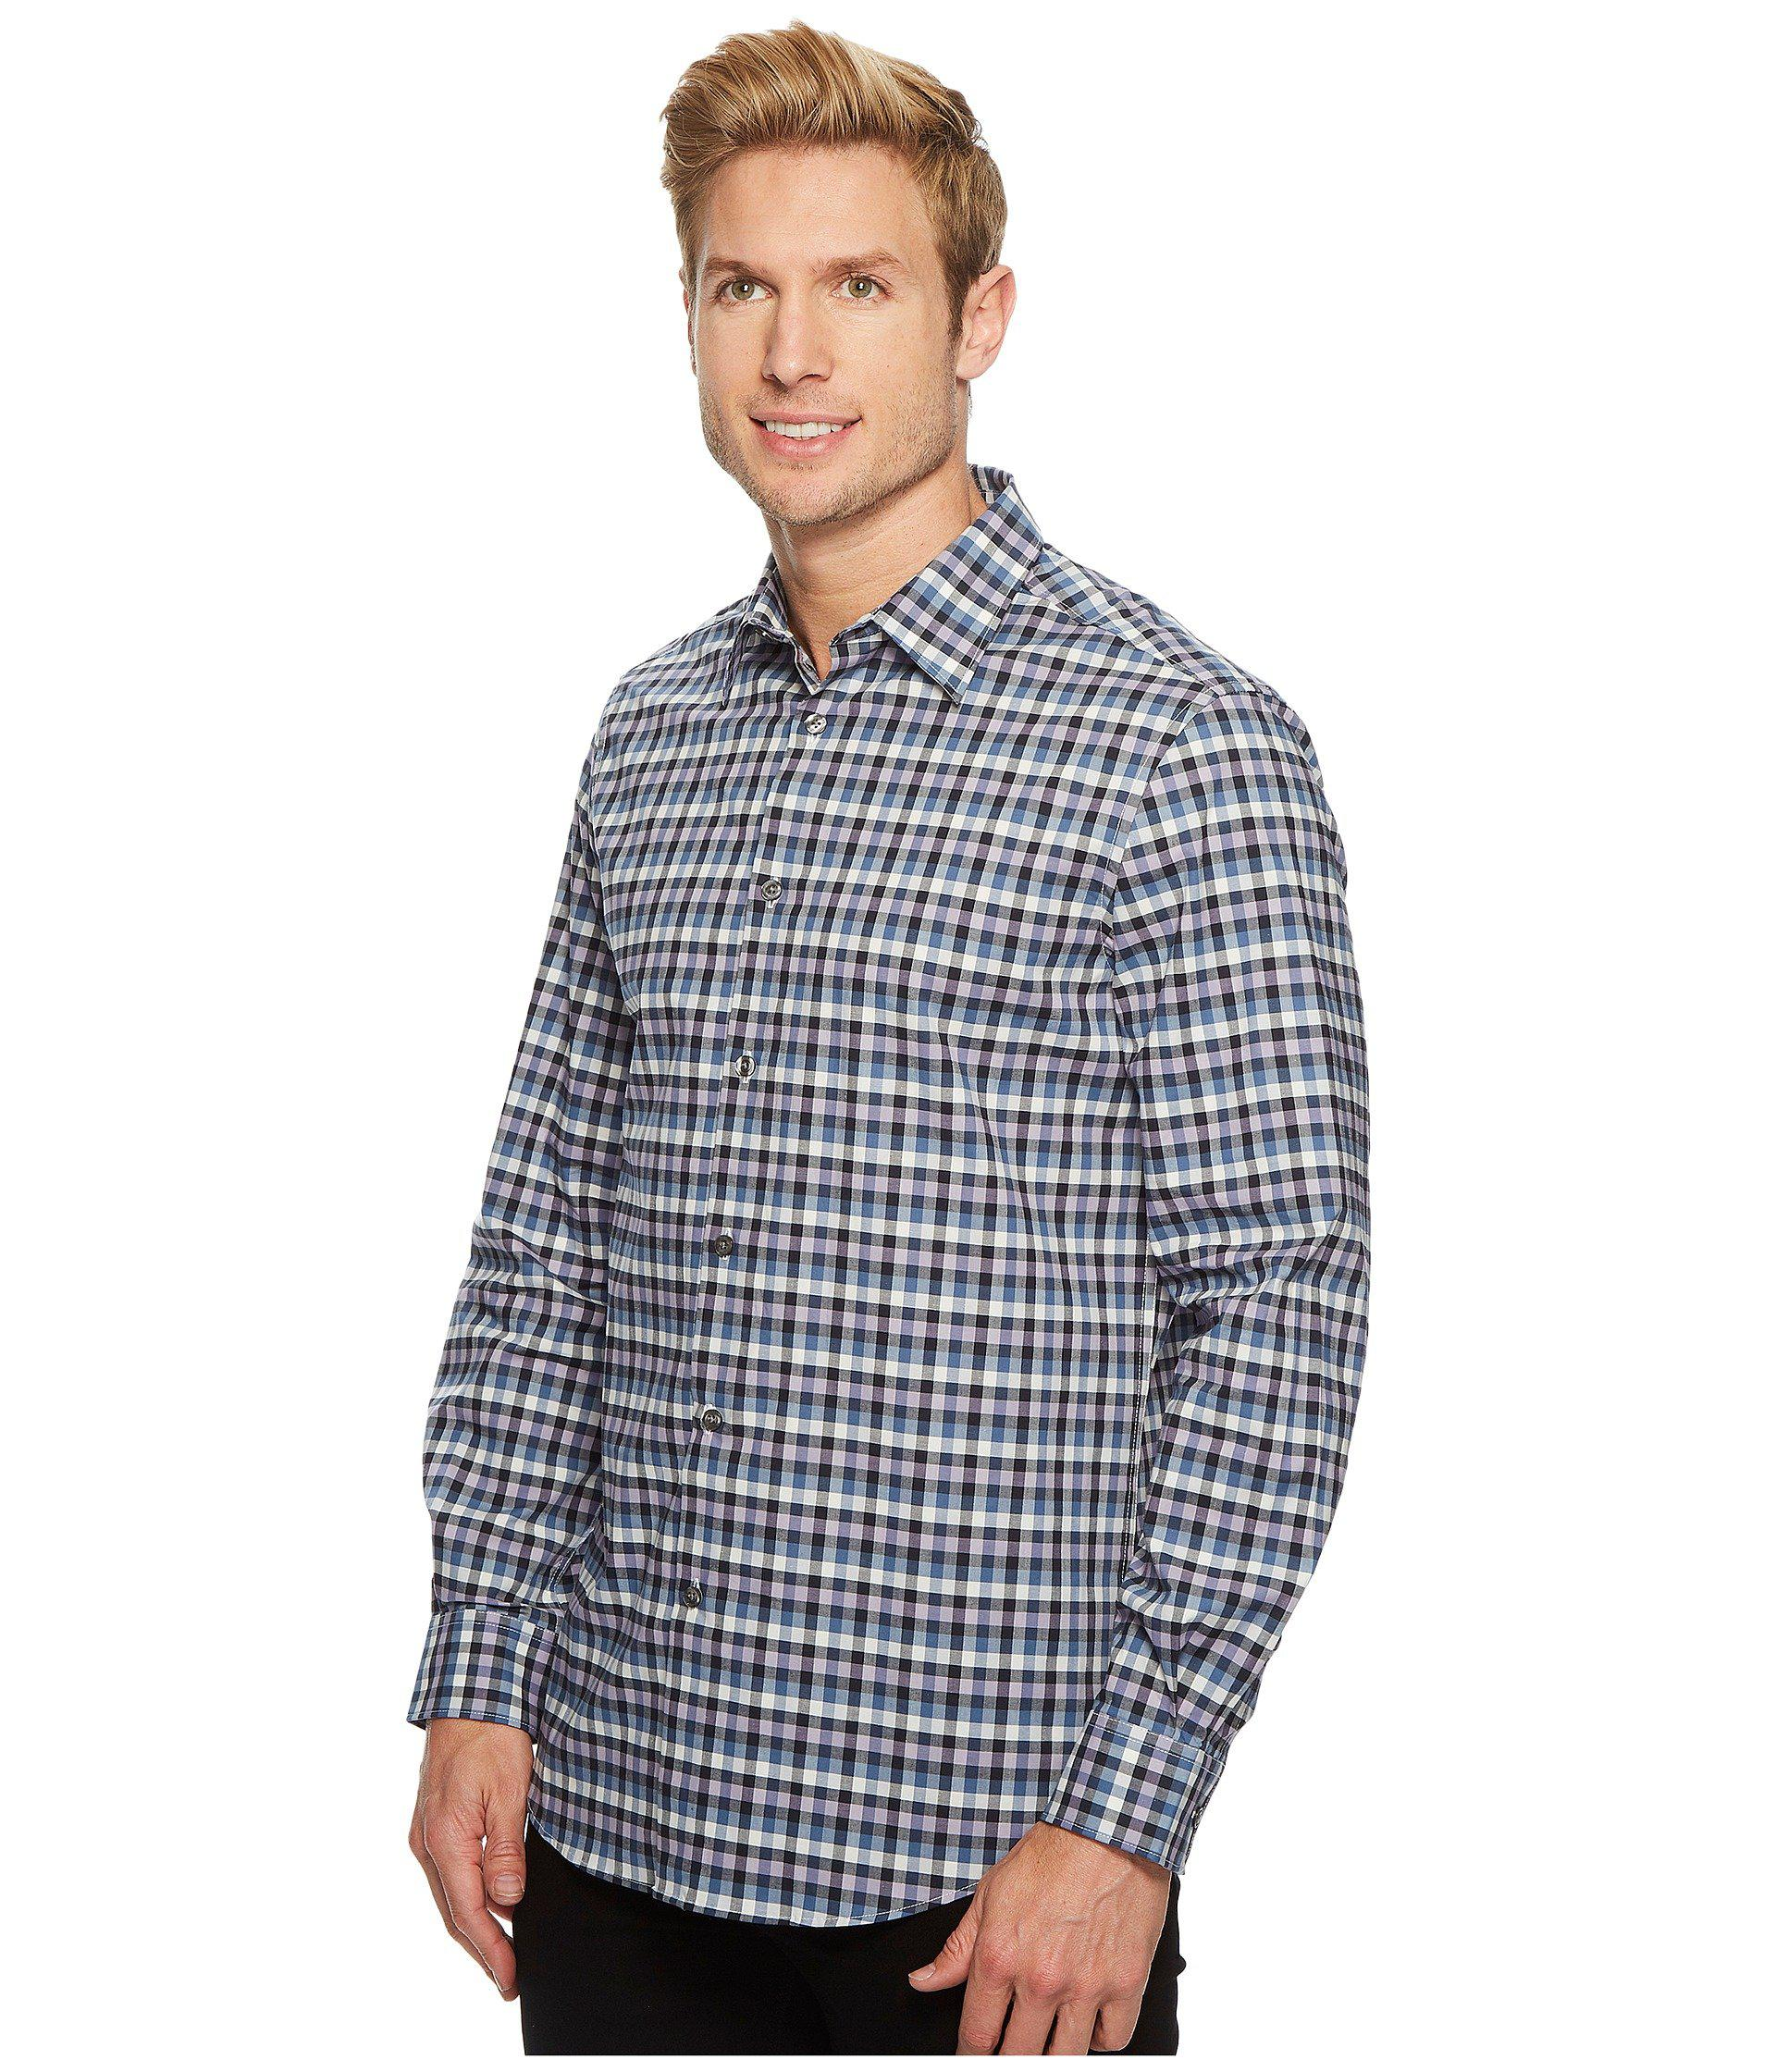 4adac527e120 Lyst - Perry Ellis Checker Plaid Shirt in Blue for Men - Save 45%